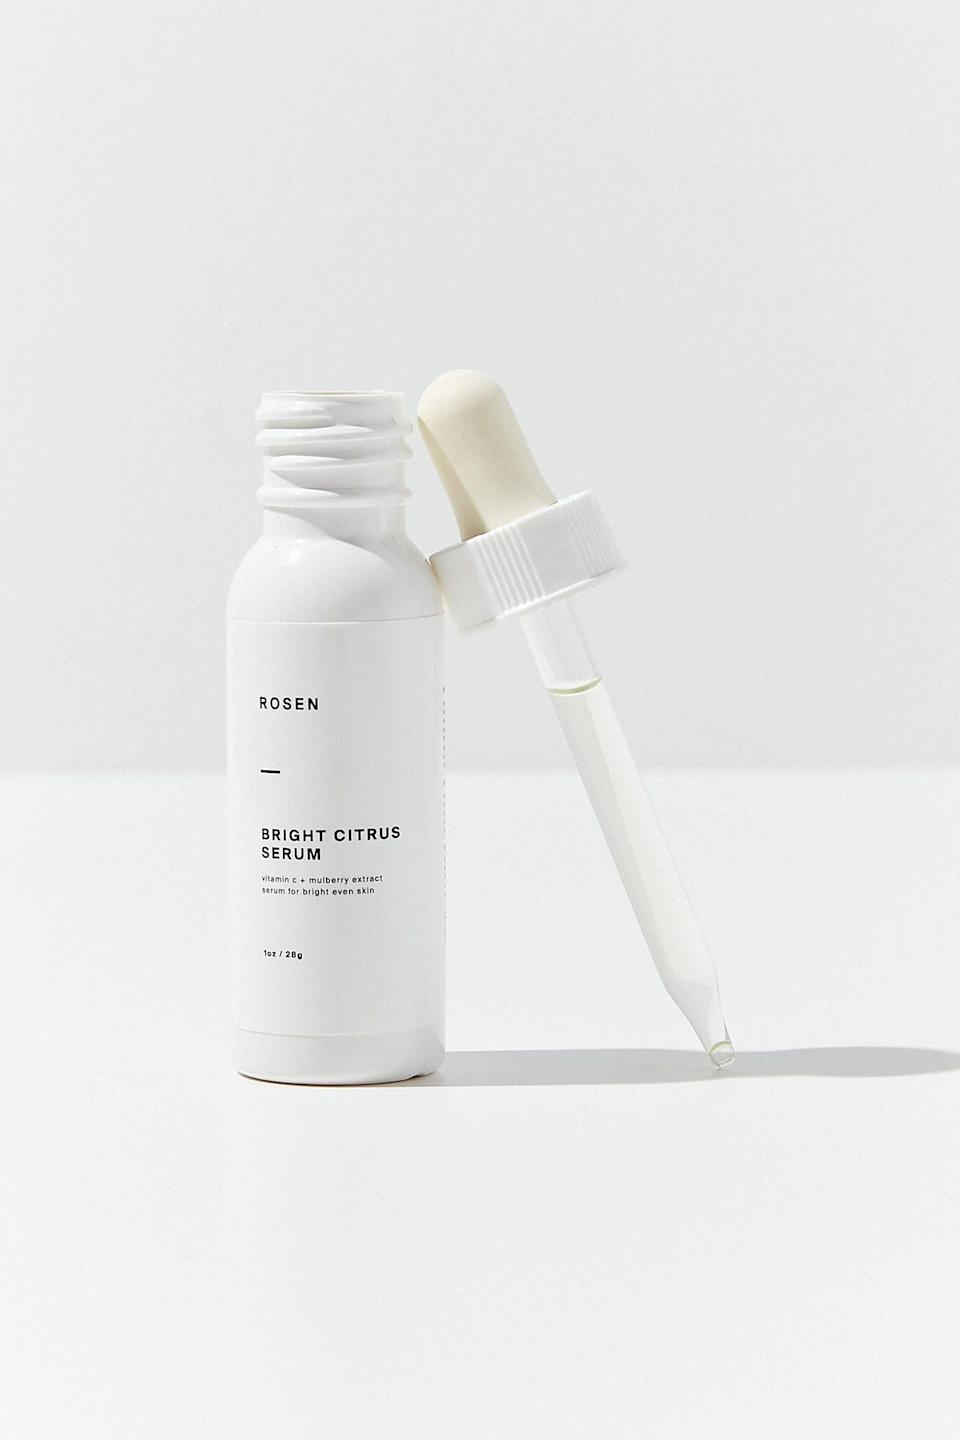 """<p><strong>ROSEN Skincare</strong></p><p>urbanoutfitters.com</p><p><strong>$18.00</strong></p><p><a href=""""https://go.redirectingat.com?id=74968X1596630&url=https%3A%2F%2Fwww.urbanoutfitters.com%2Fshop%2Frosen-skincare-bright-citrus-serum&sref=https%3A%2F%2Fwww.oprahmag.com%2Fbeauty%2Fg28640232%2Fbest-vitamin-c-serums%2F"""" rel=""""nofollow noopener"""" target=""""_blank"""" data-ylk=""""slk:SHOP NOW"""" class=""""link rapid-noclick-resp"""">SHOP NOW</a></p><p>Put your freshest face forward with this hardworking formula, which can be applied directly to clean skin or added to your moisturizer. Either way, the silky serum delivers a healthy dose of vitamin C—thanks to a blend of 20 percent L-ascorbic acid, grapefruit oil, and mulberry extract—to boost skin's radiance and reduce the appearance of discoloration.</p>"""